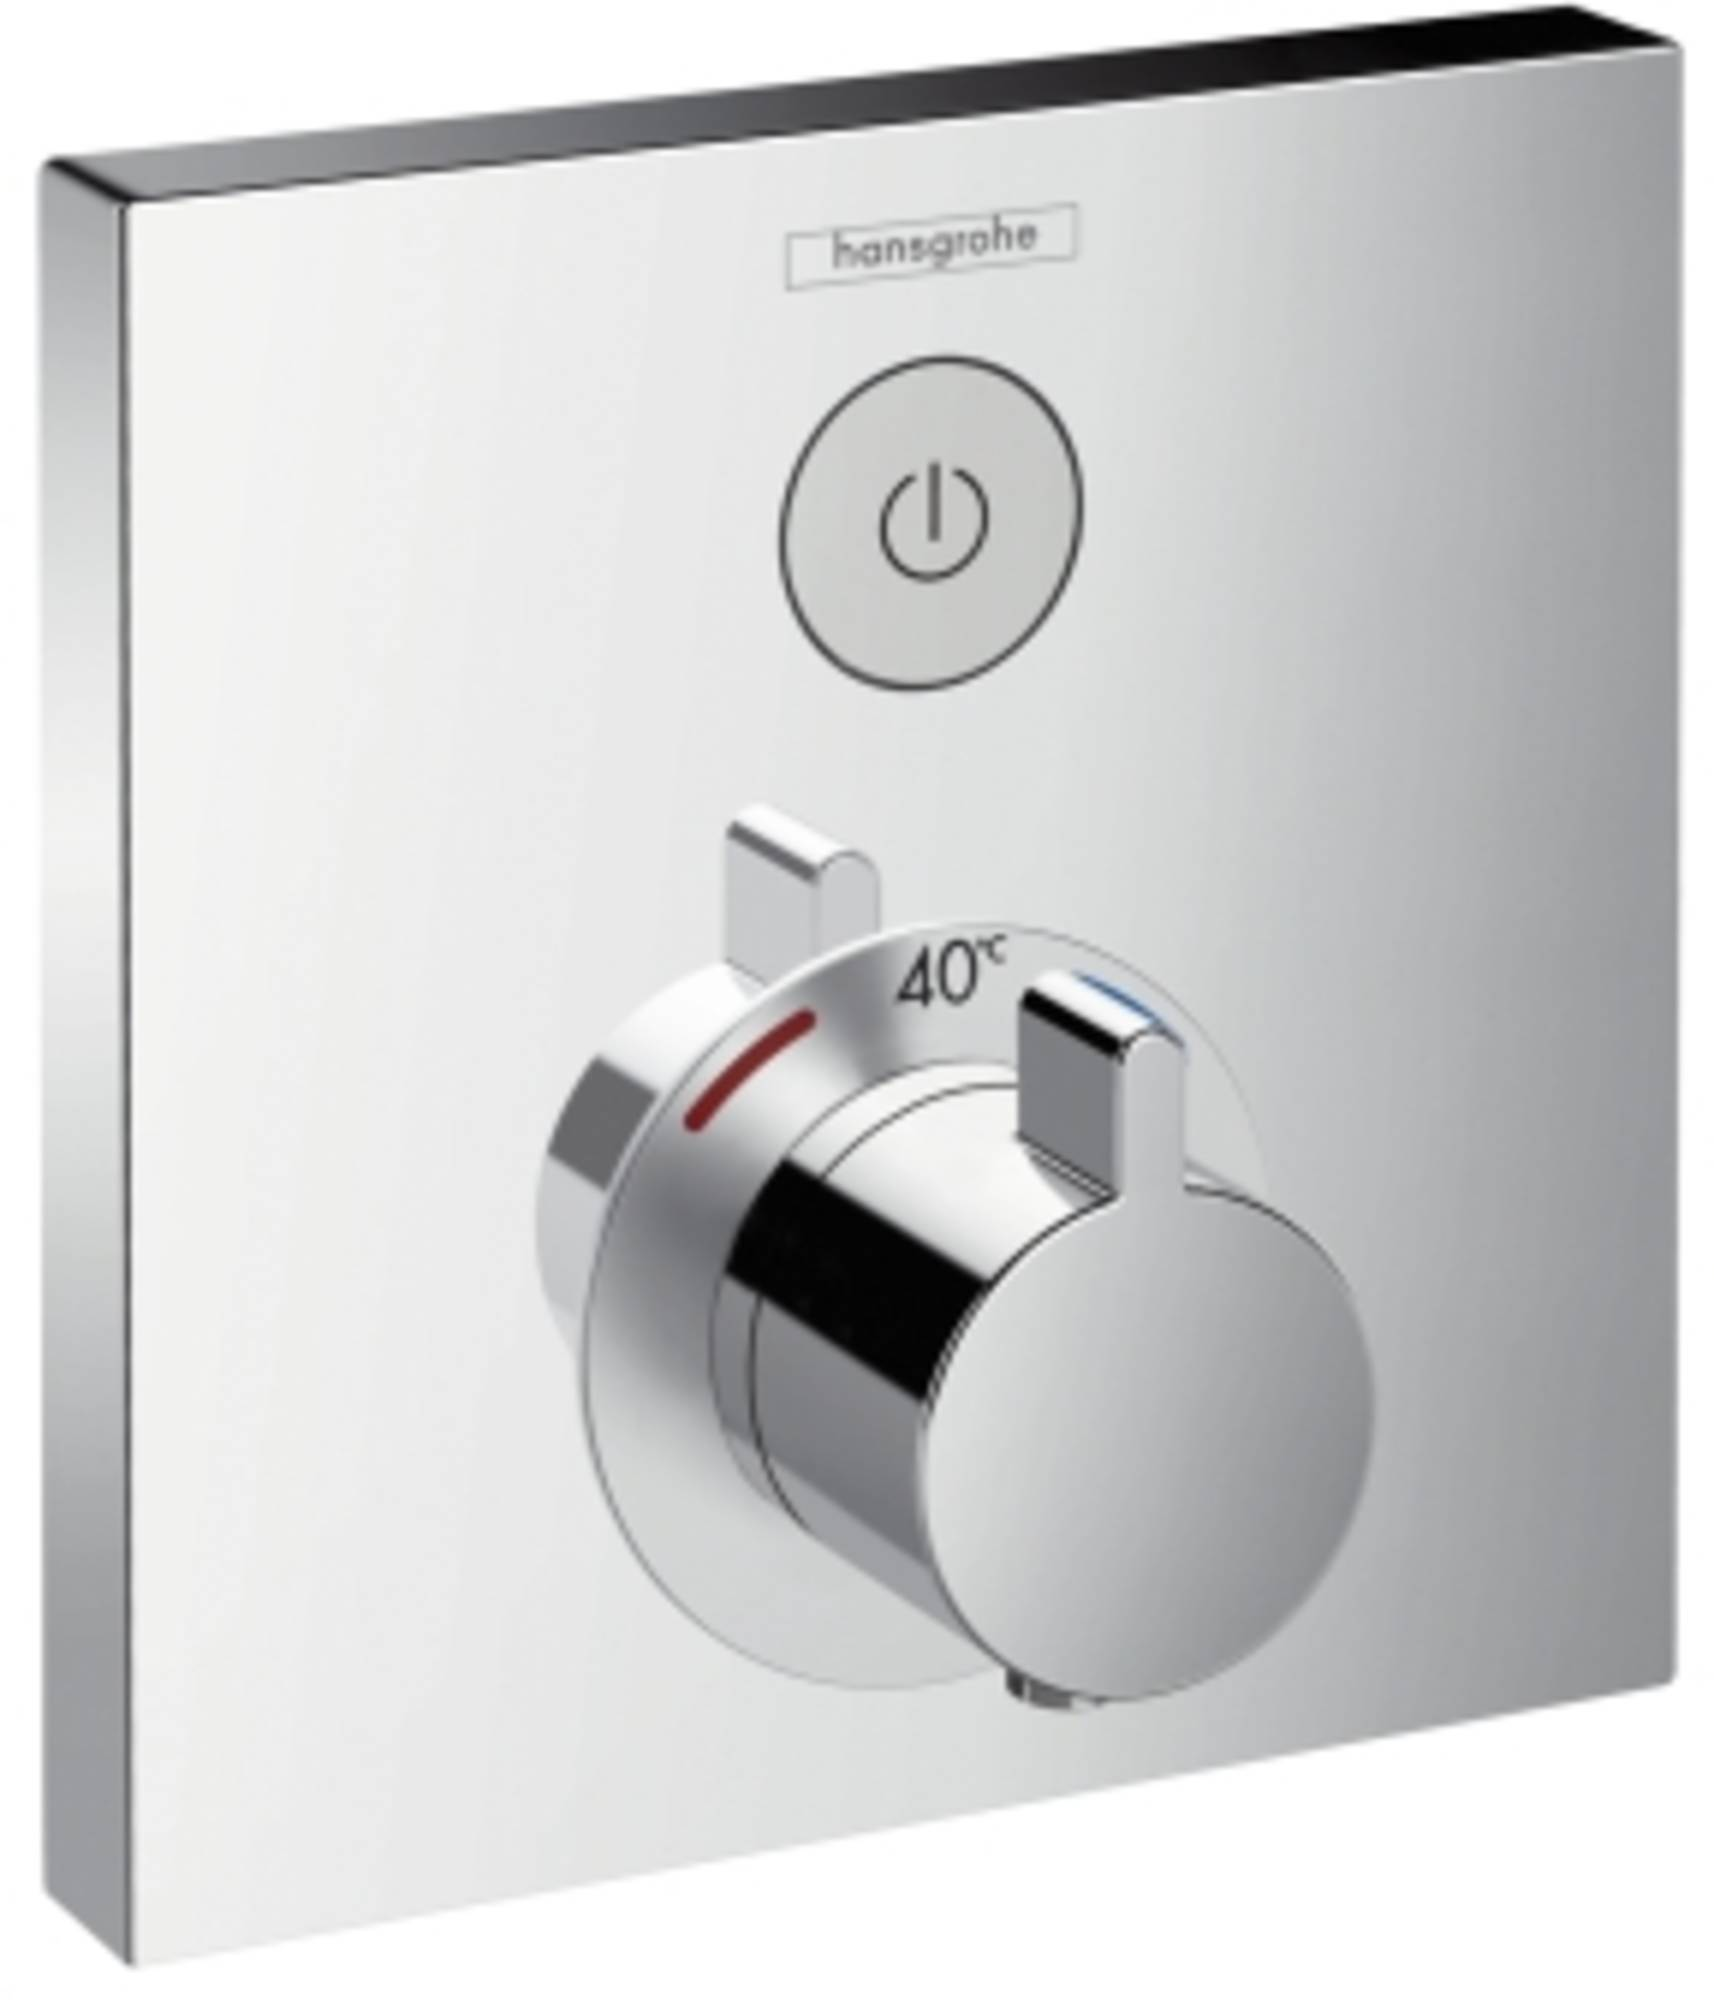 Hansgrohe ShowerSelect afbouwdeel inbouwdeel ibox douchethermostaat chroom 15762000